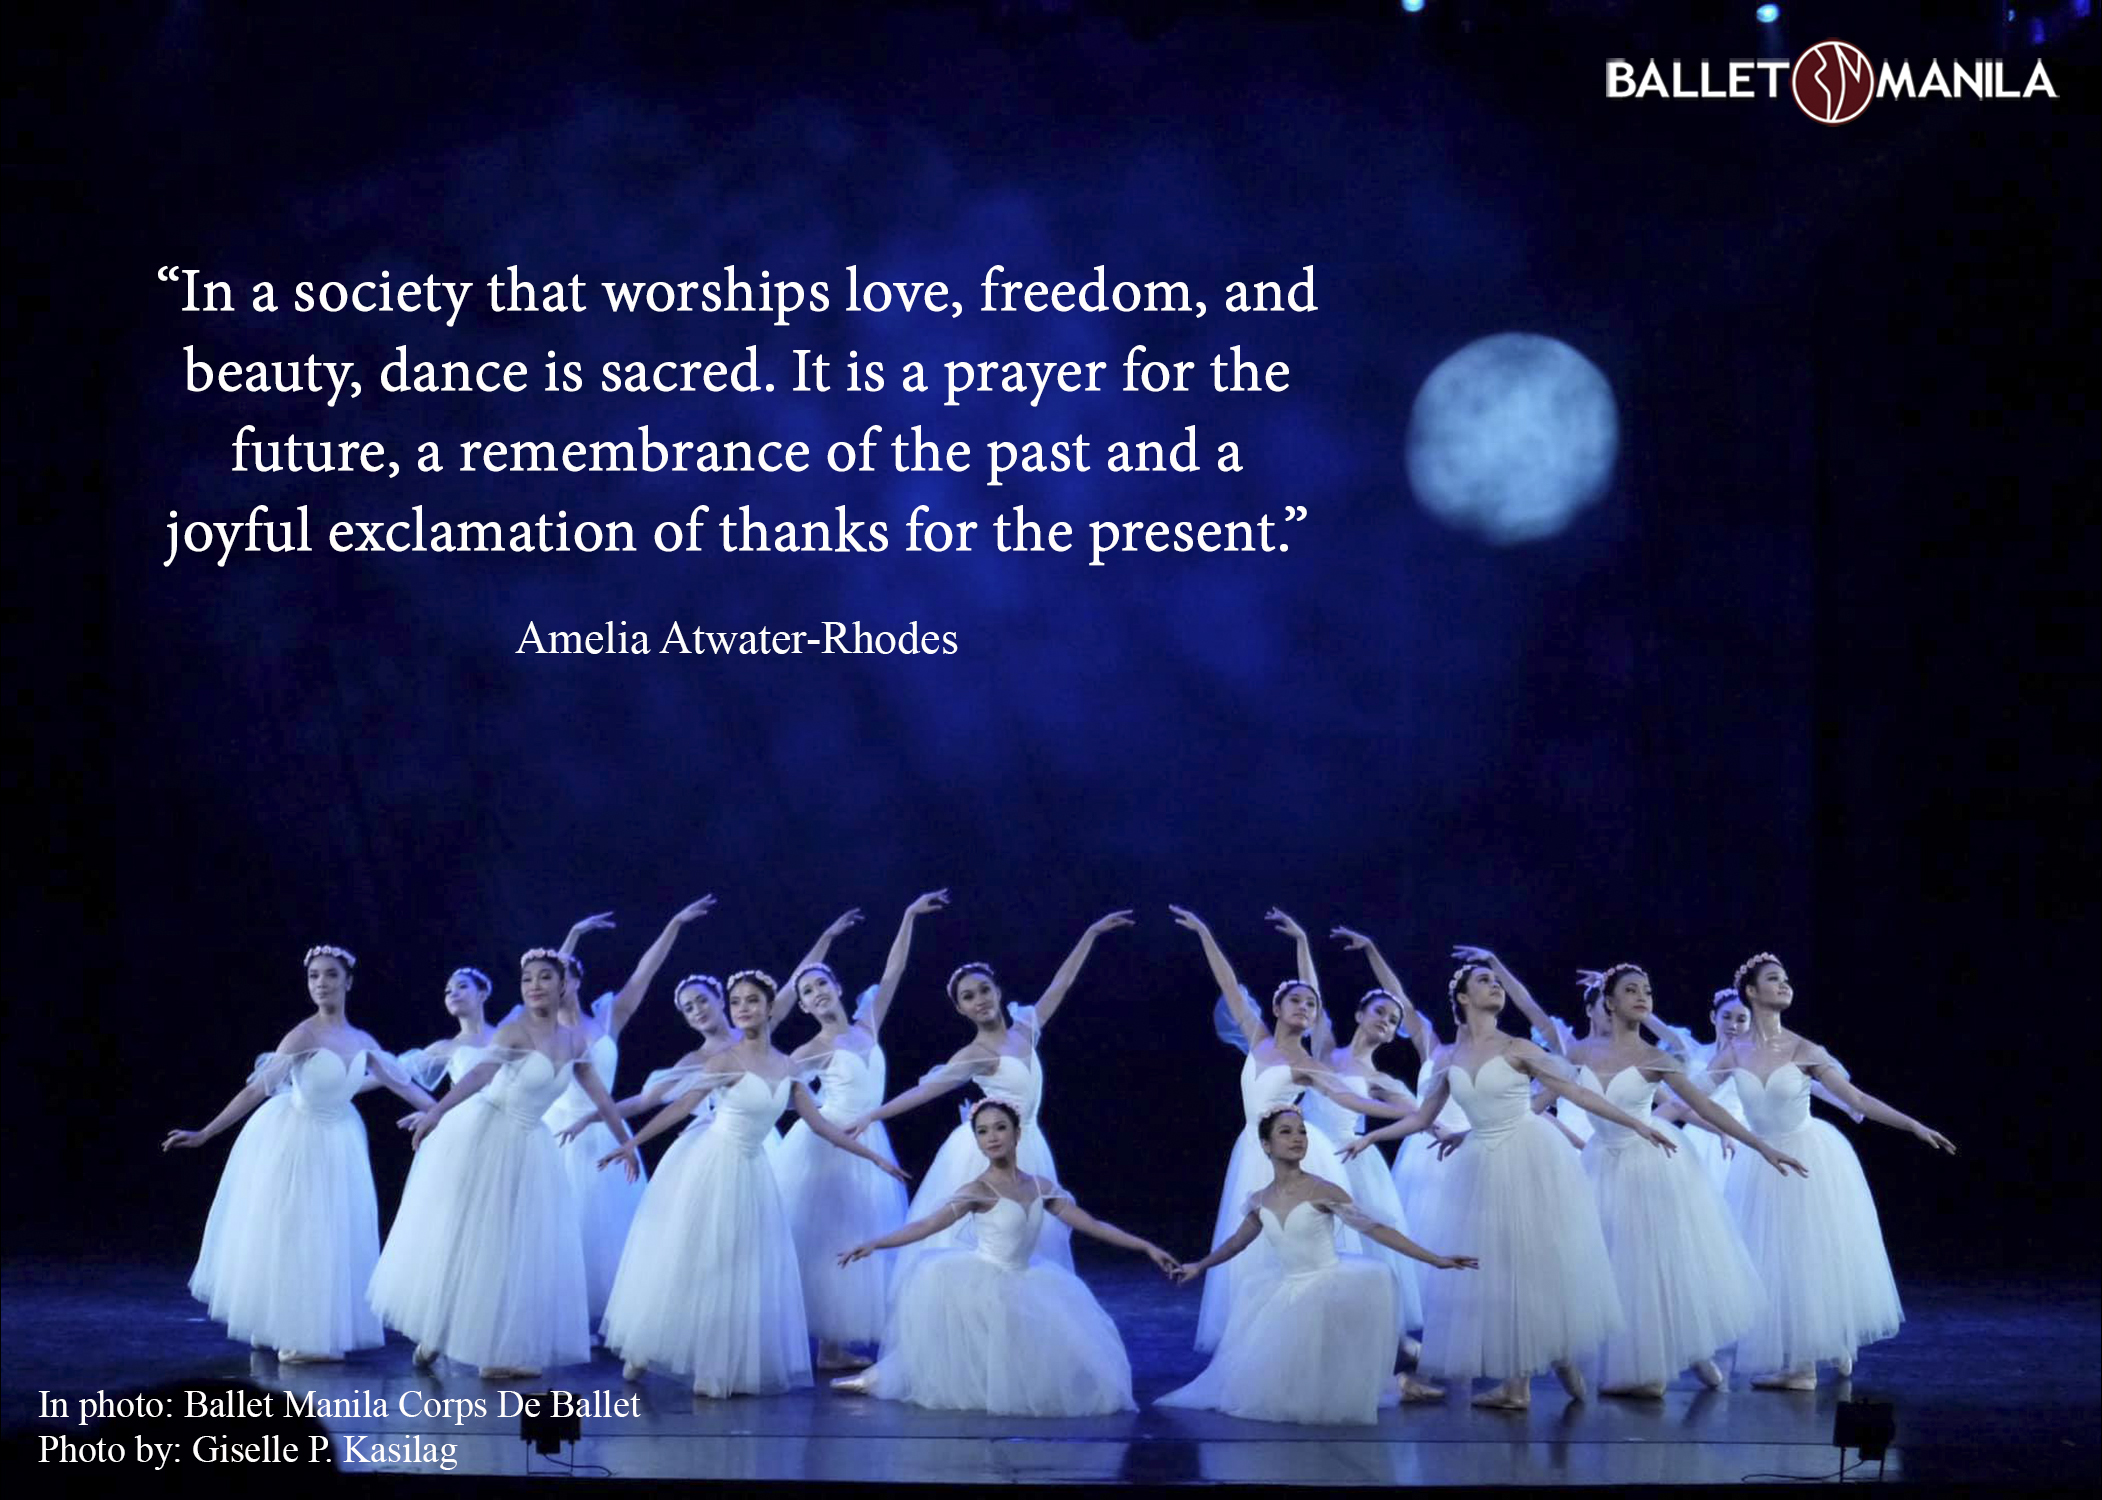 Talk about dance: Amelia Atwater-Rhodes 1 - Ballet Manila Archives